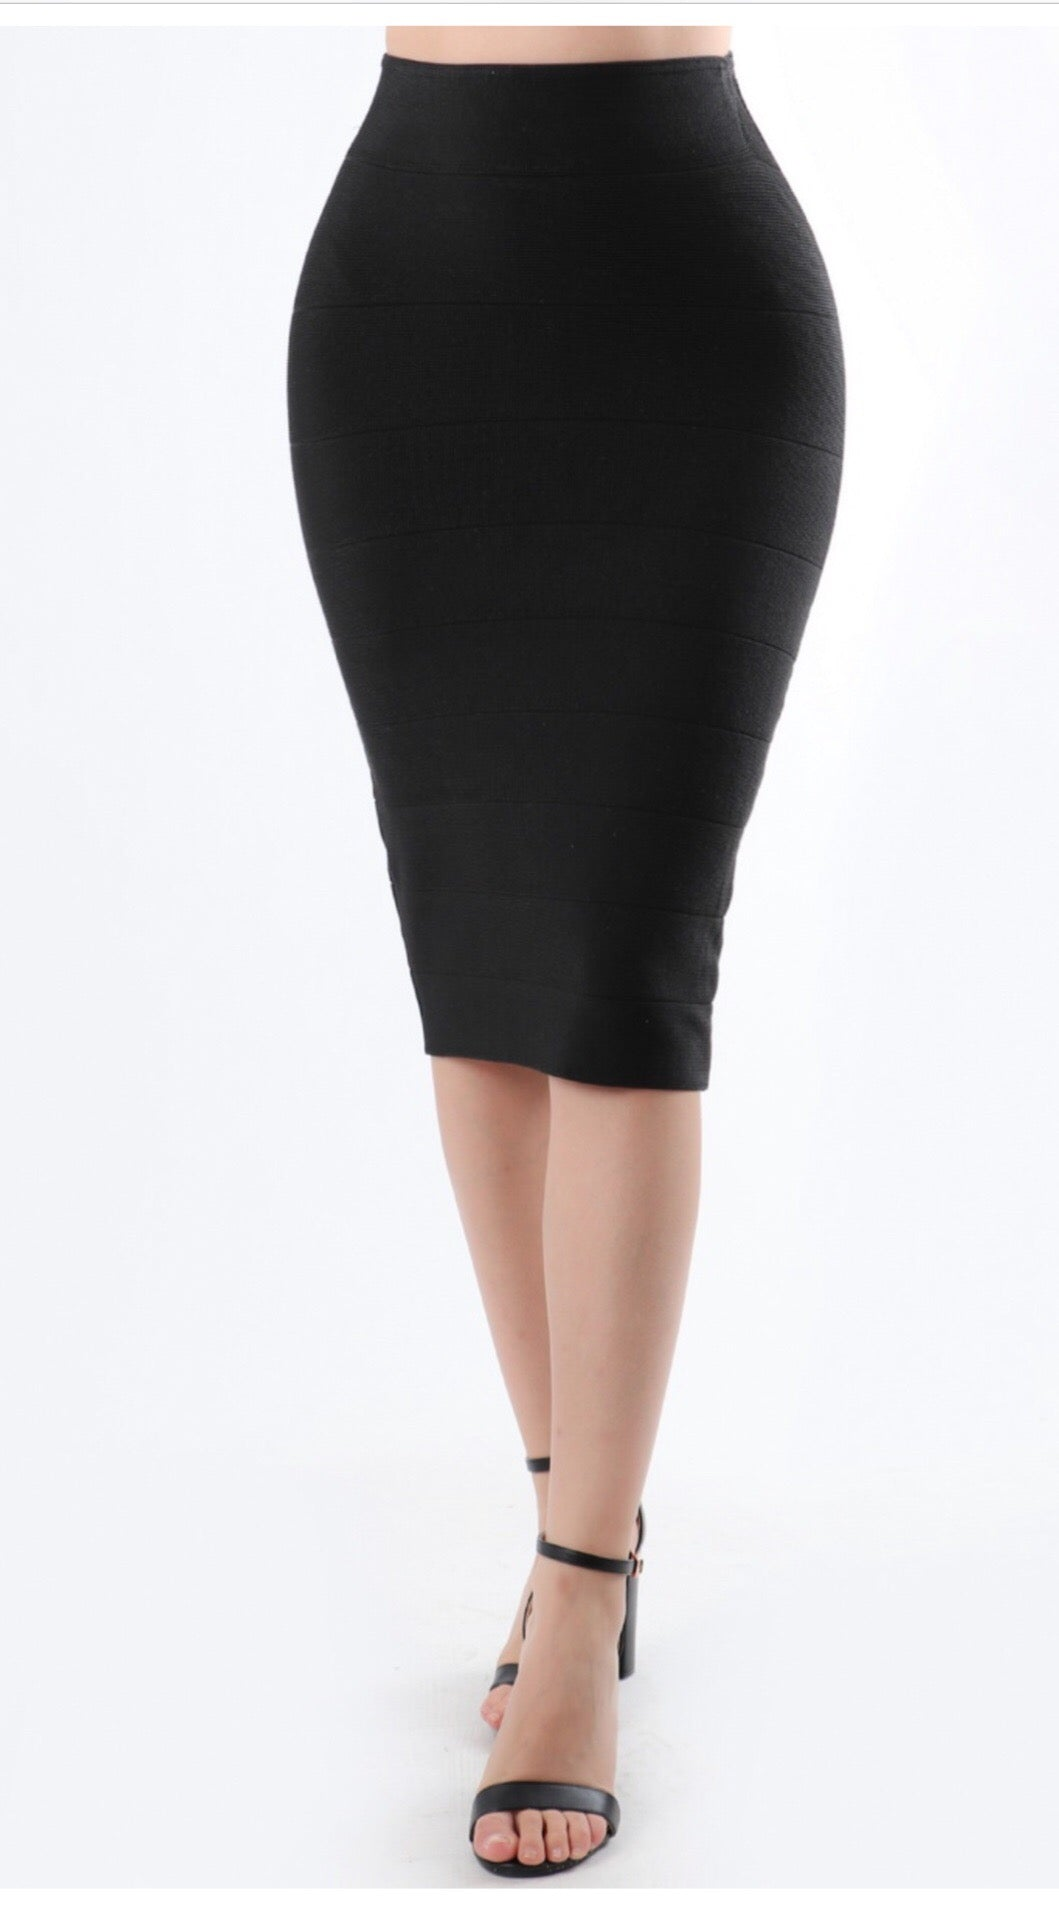 Sofia Bandage Pencil Skirt